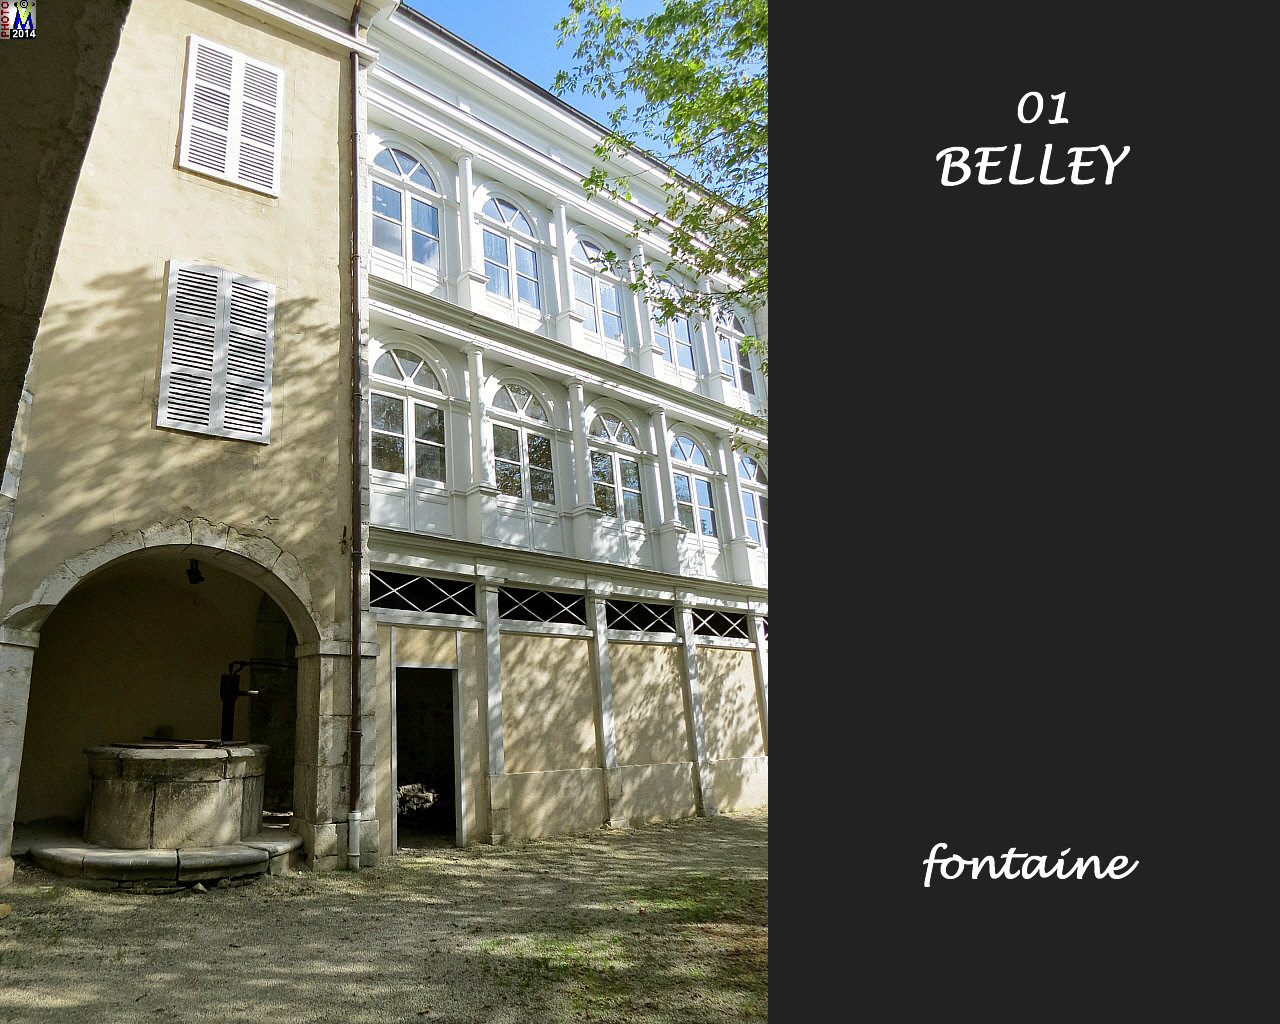 01BELLEY_fontaine_130.jpg